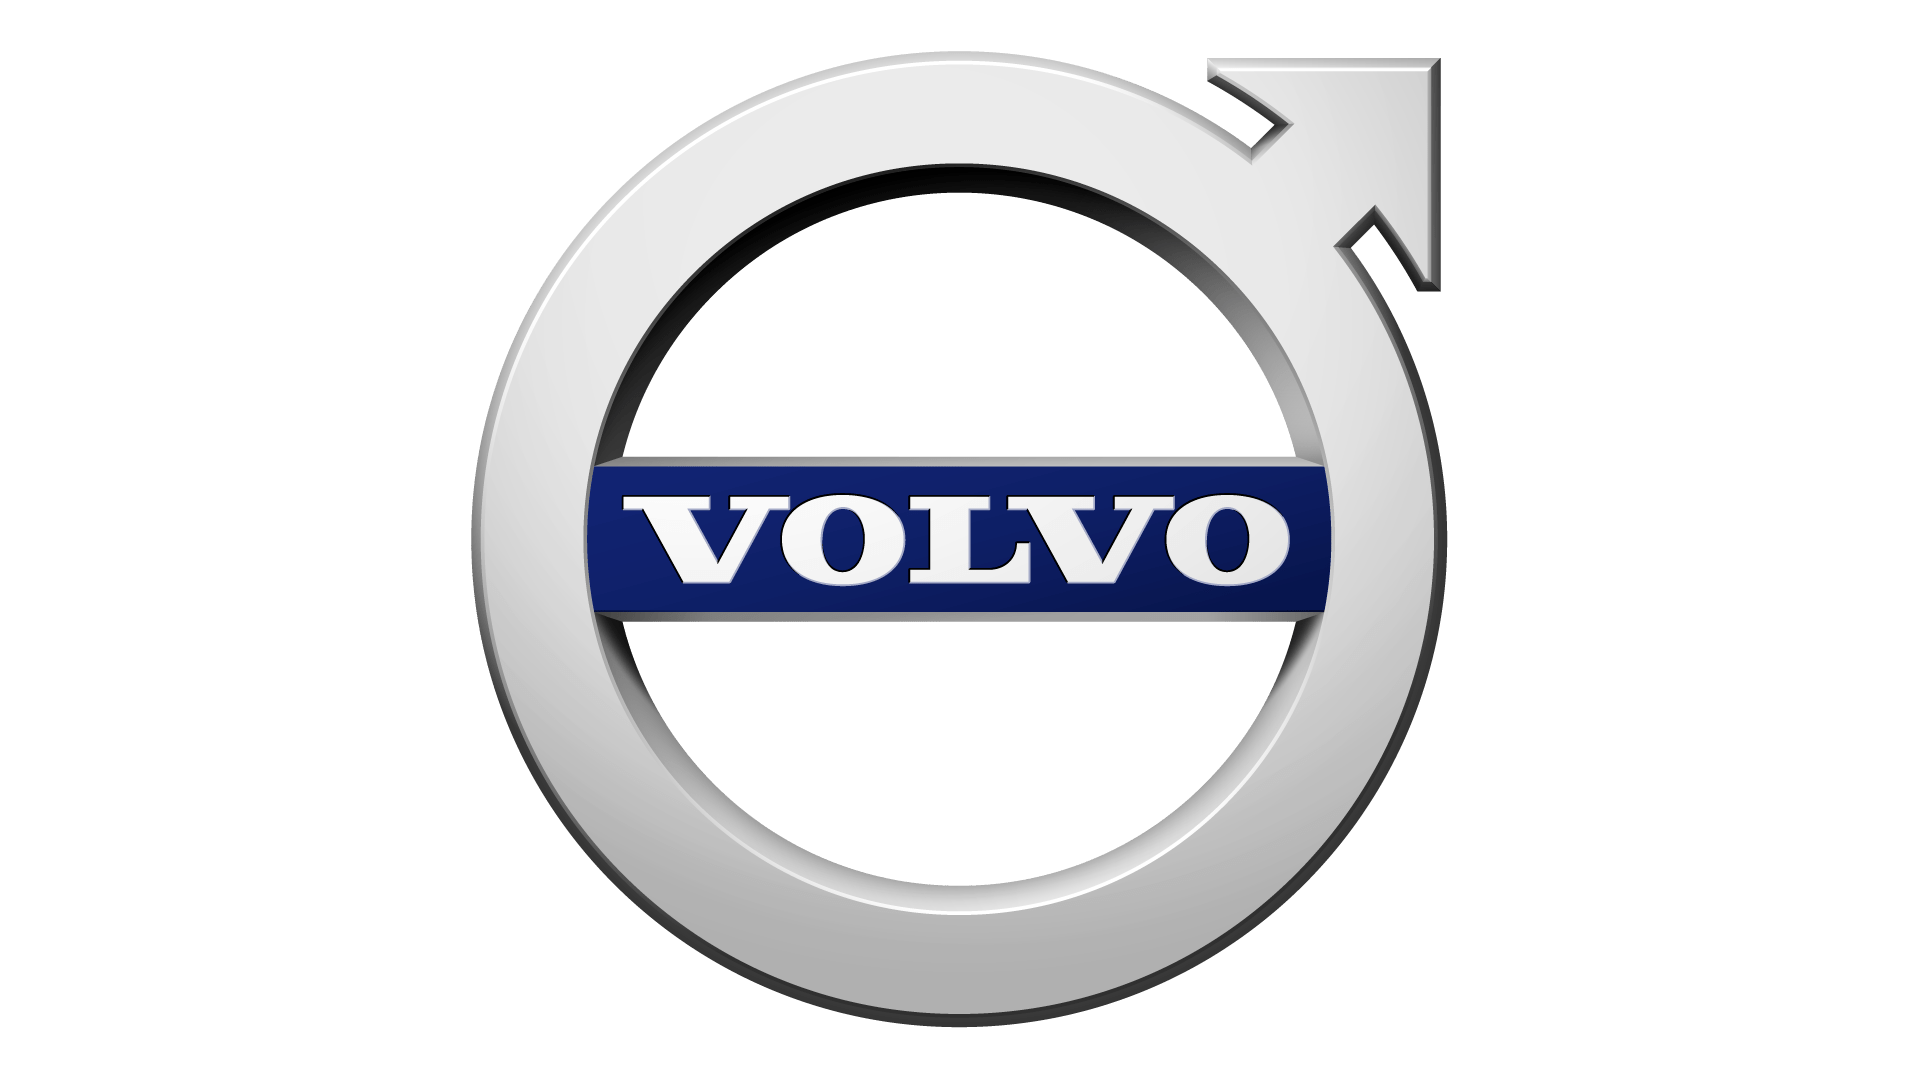 Volvo Logo Hd Png Meaning Information